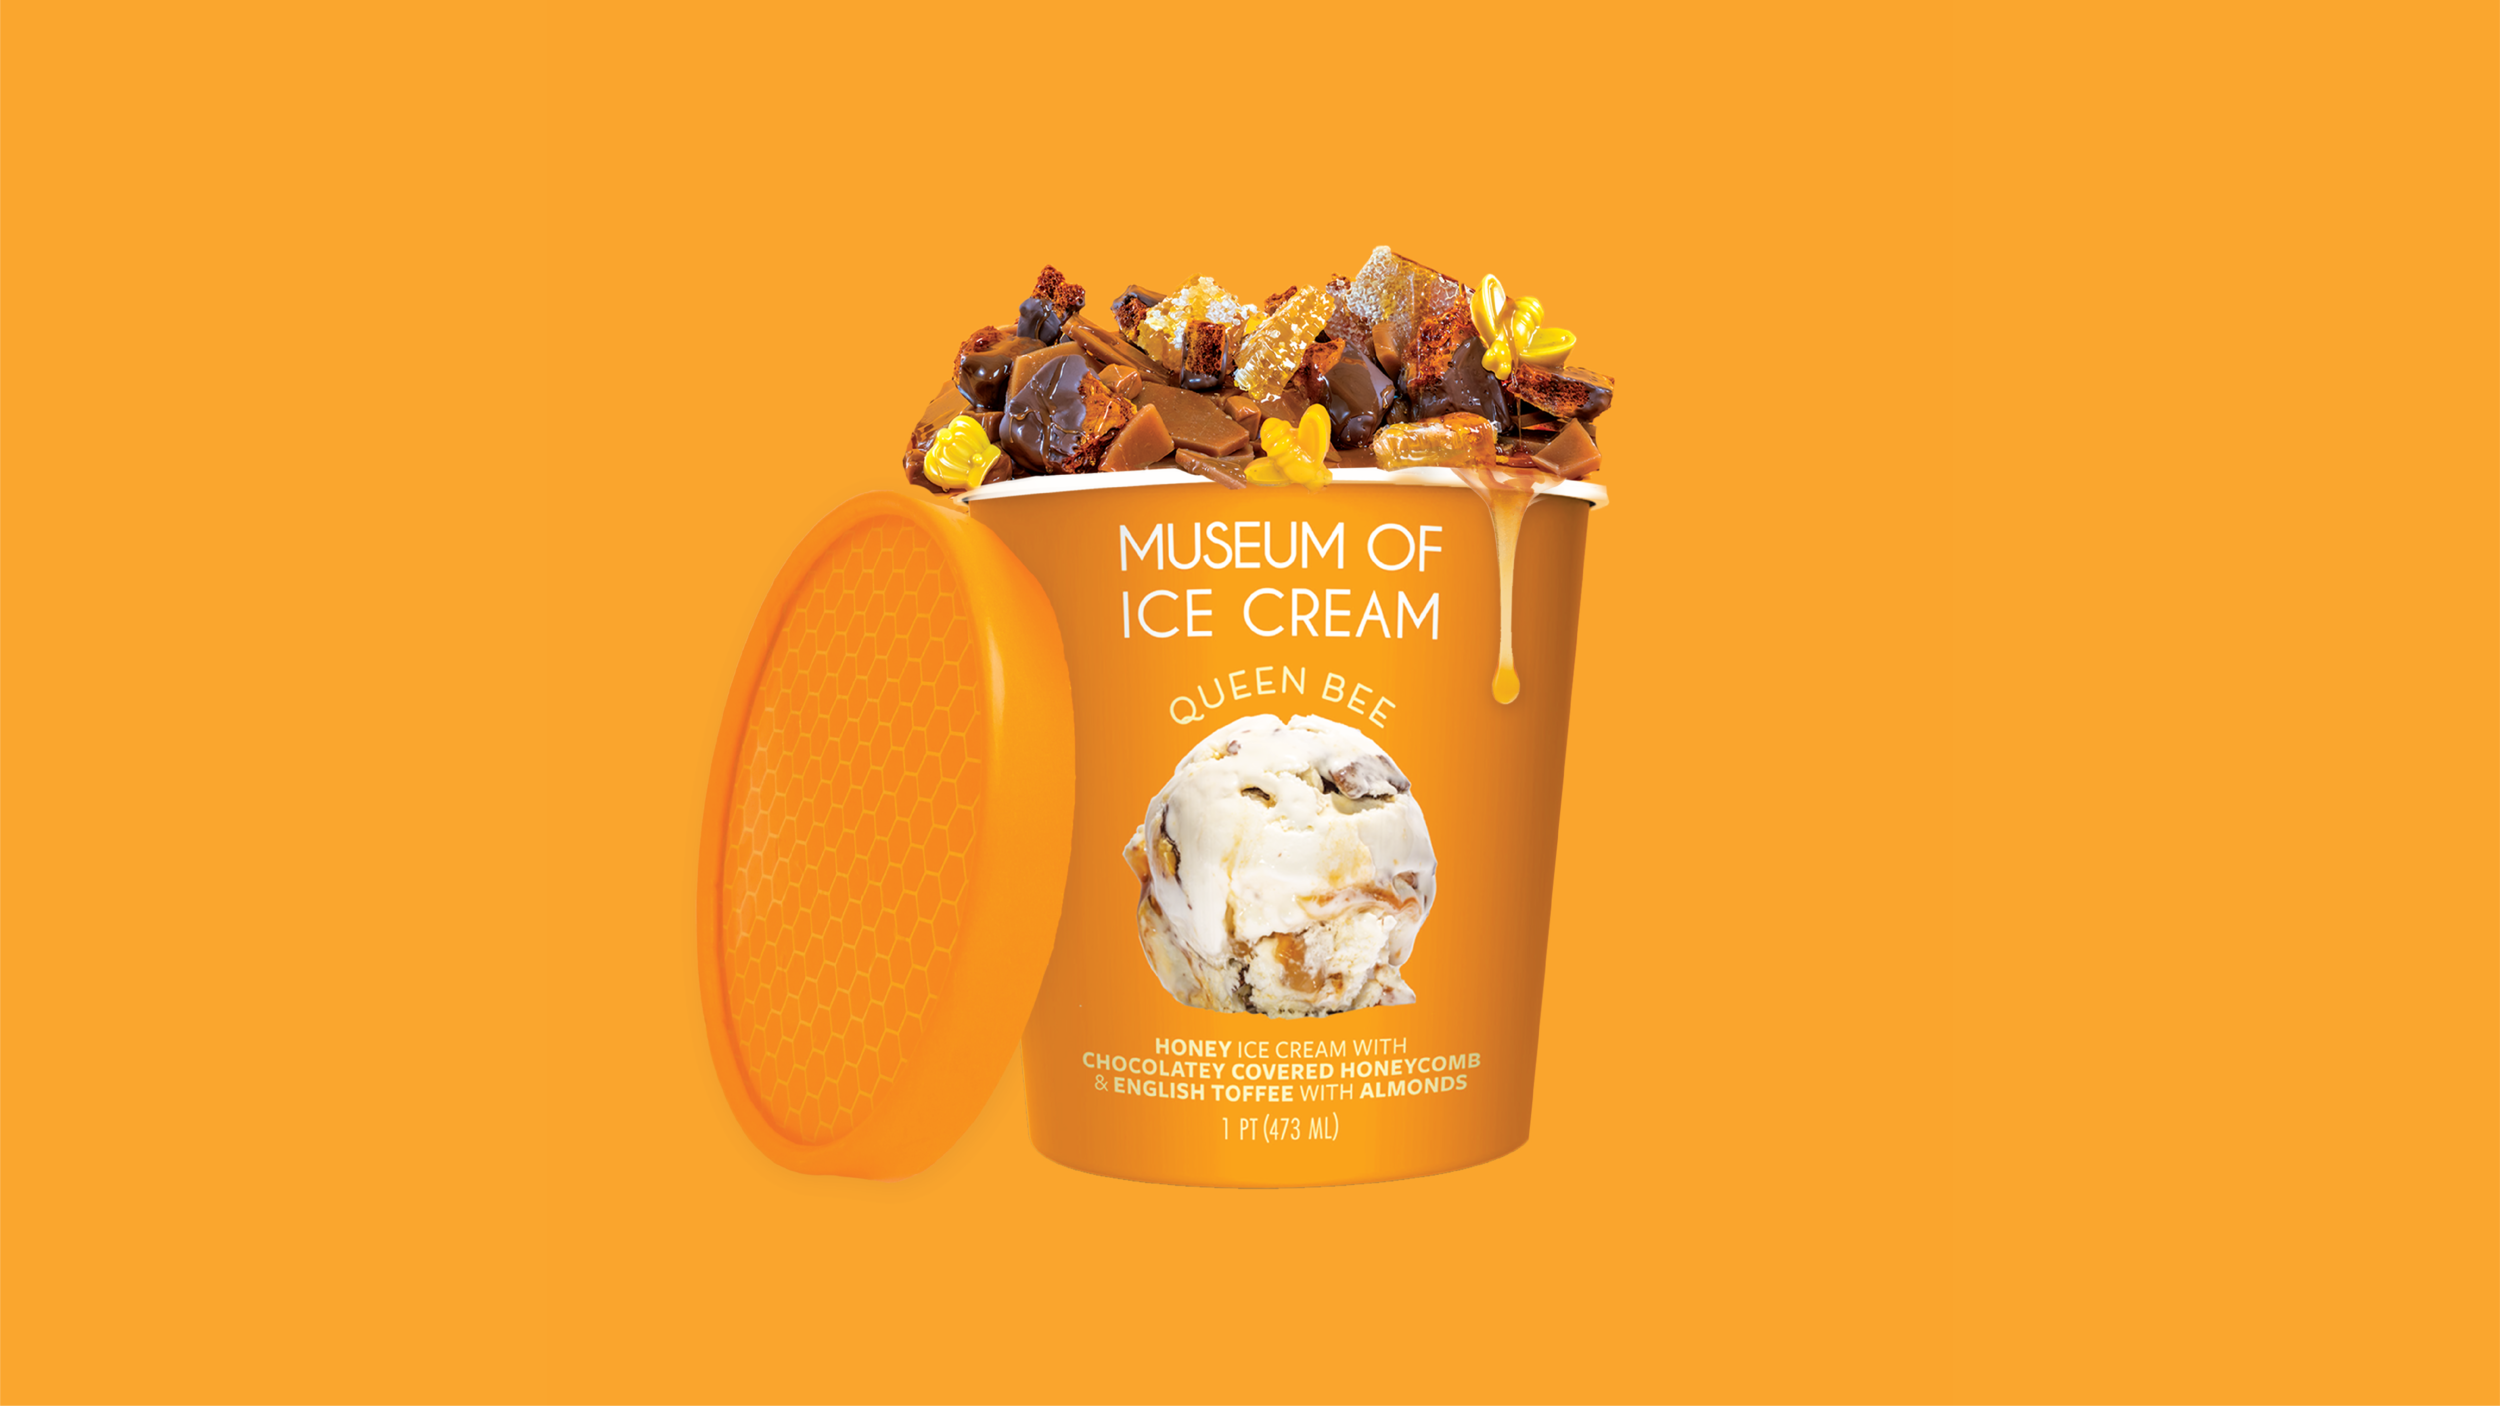 museum-of-ice-cream_ice-cream_queen-bee.png